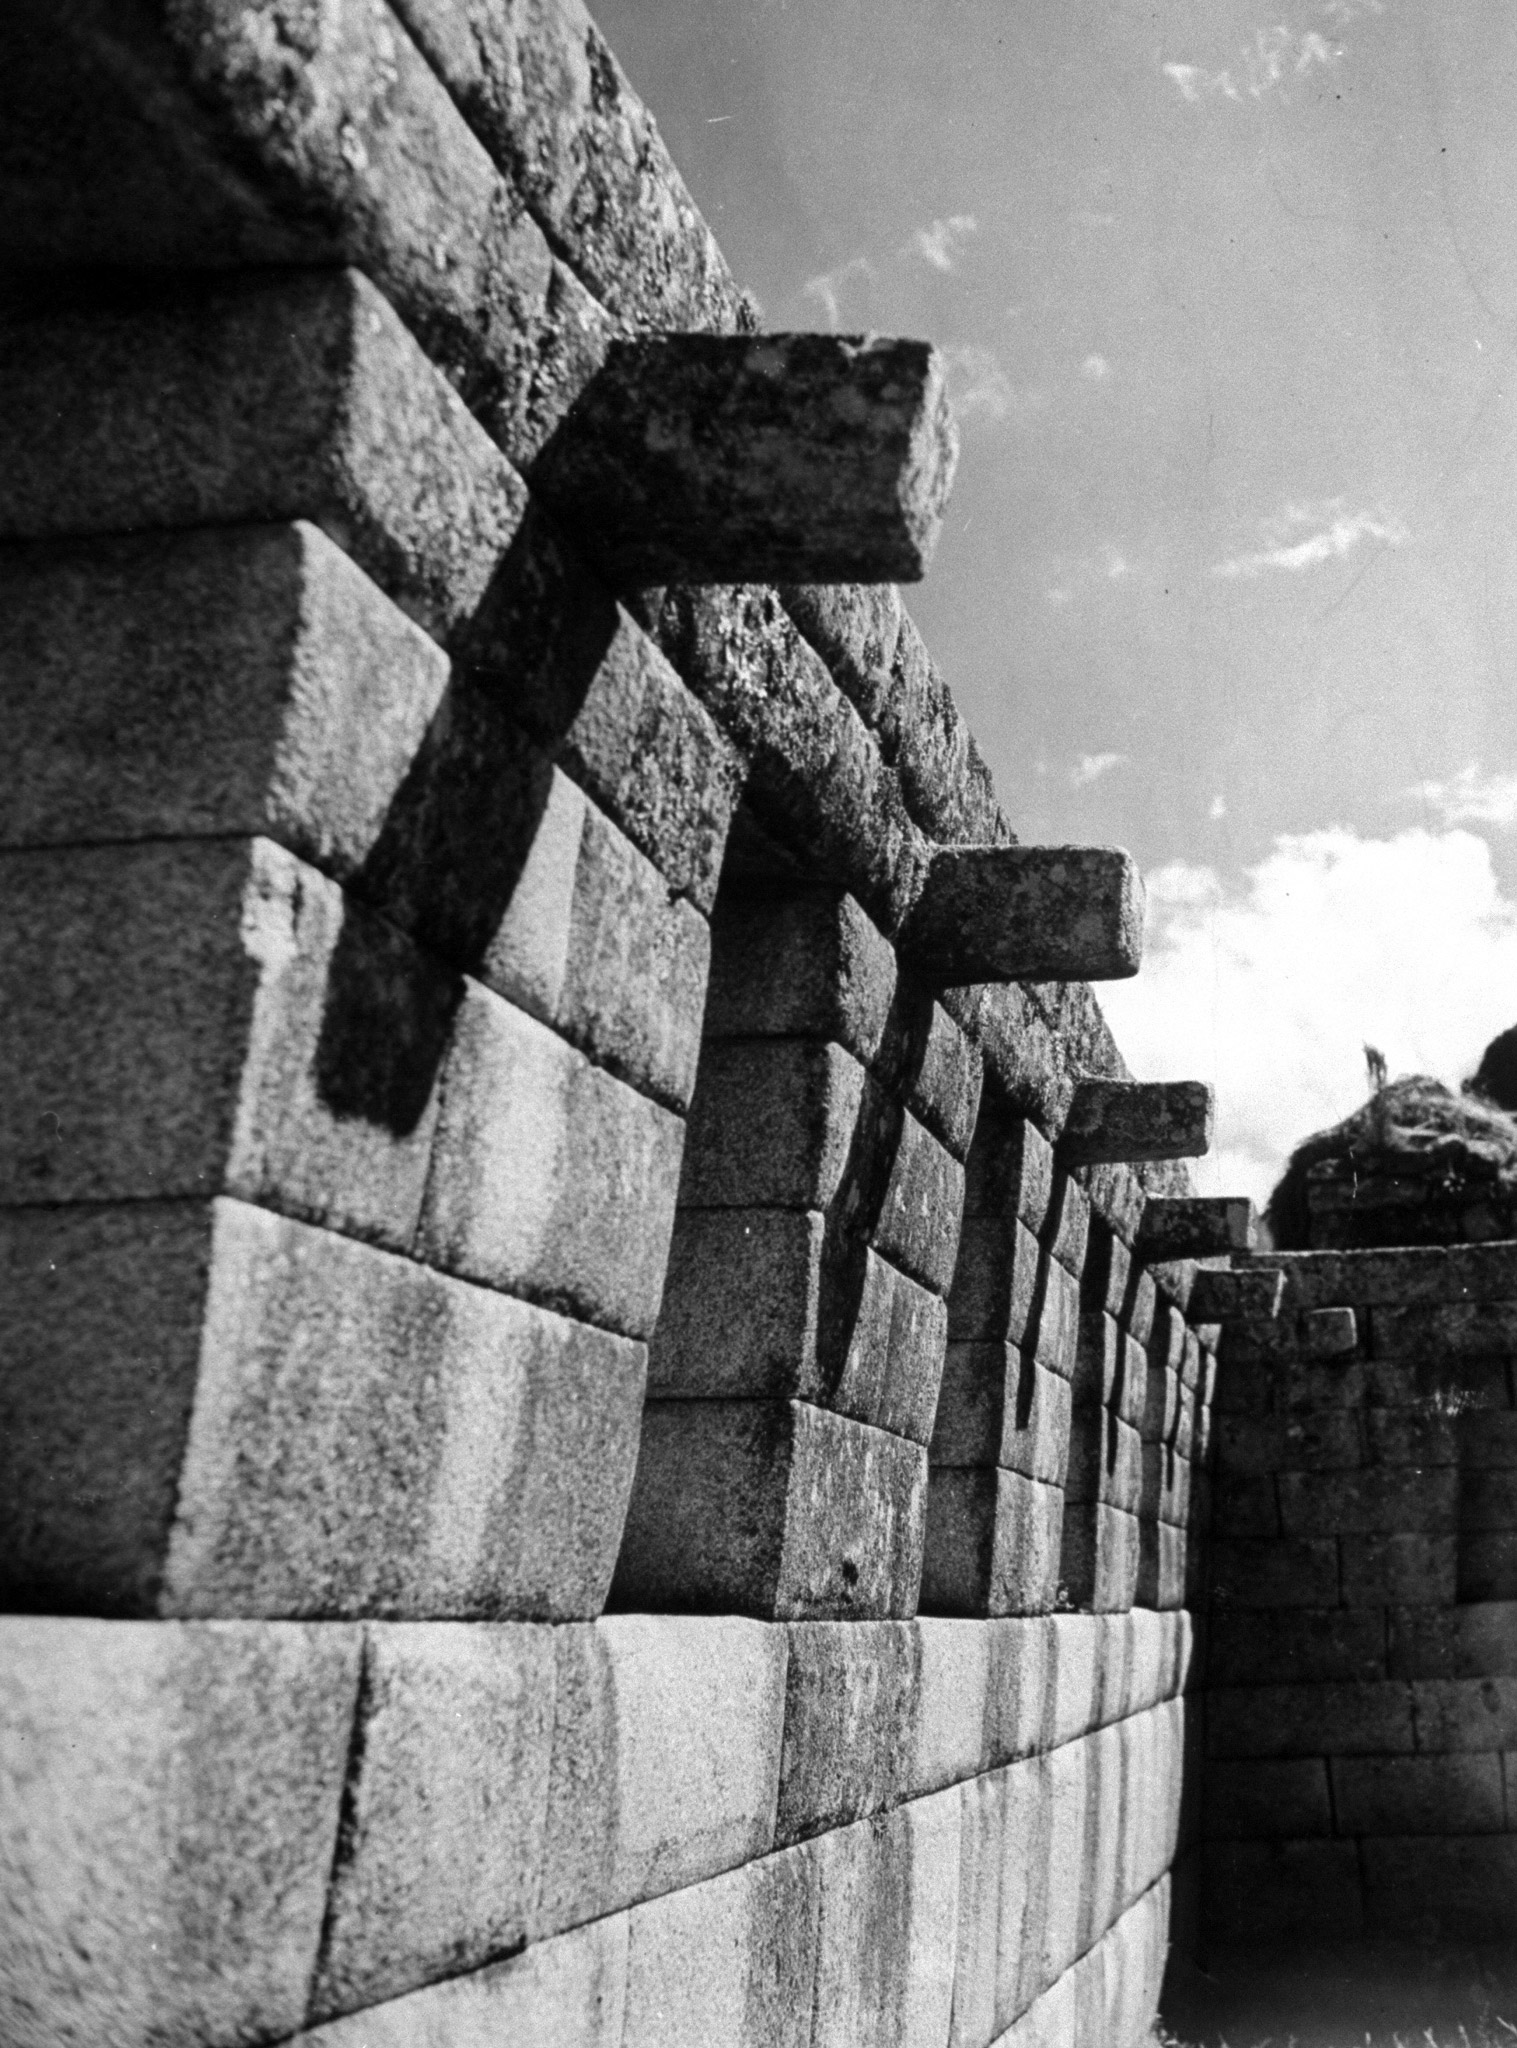 <b>Caption from LIFE.</b> Square pegs along inside of roof of Machu Picchu temple were possibly used to tie on the roof beams.